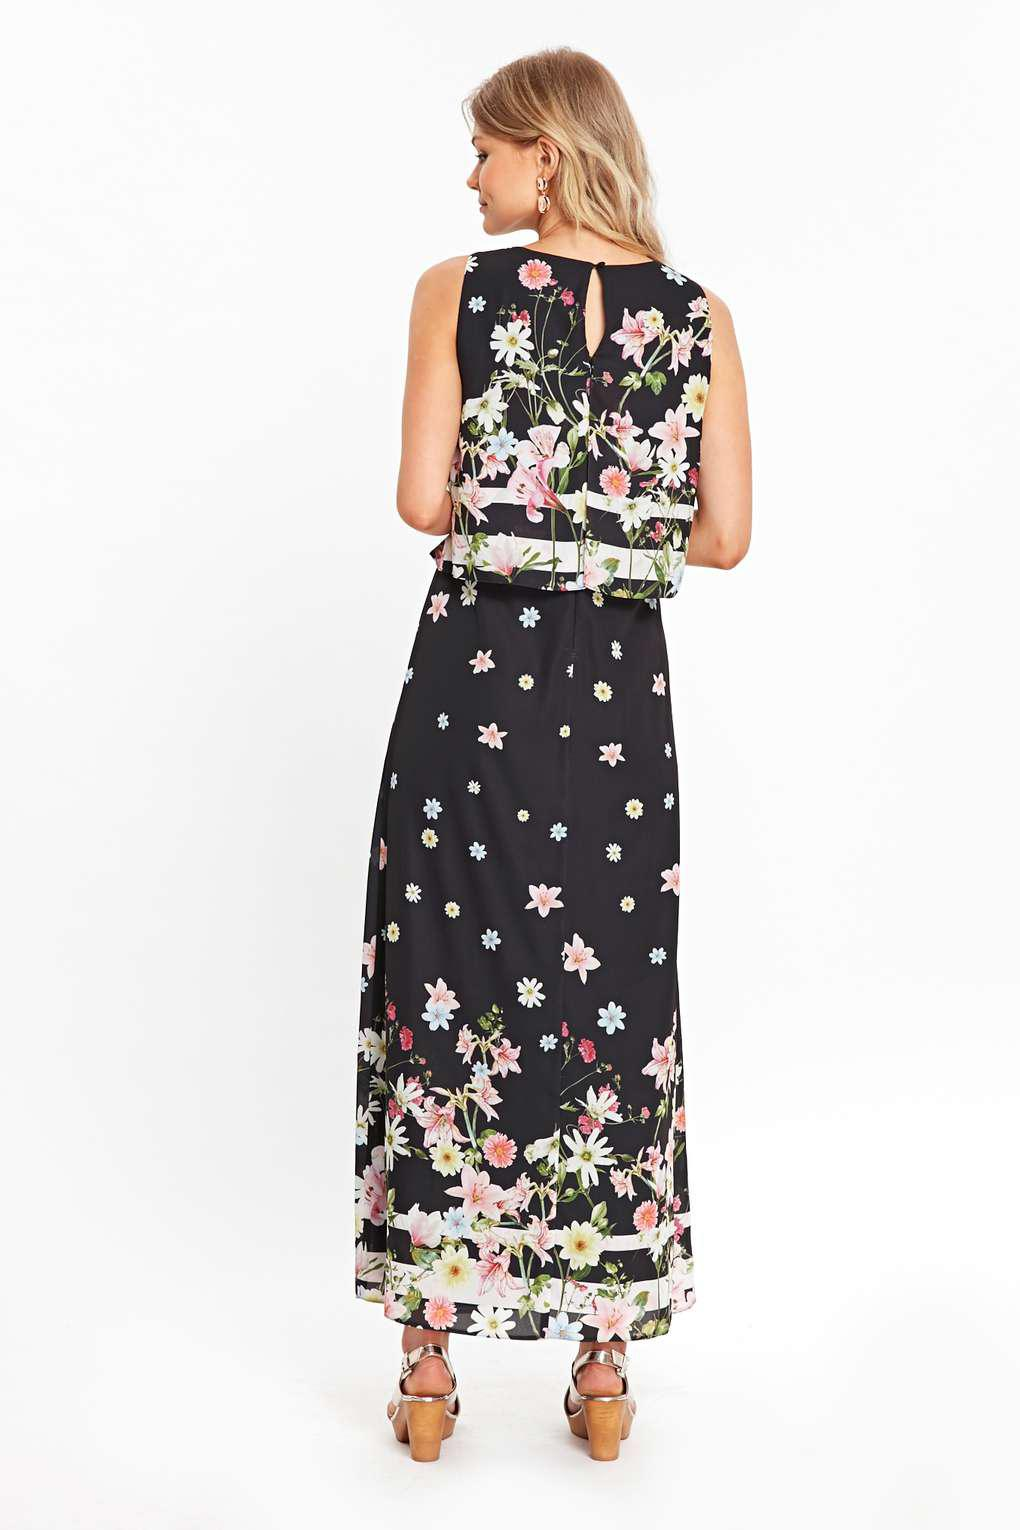 cbd7b9ca1e8 Wallis Petite Black Floral Maxi Dress - Data Dynamic AG